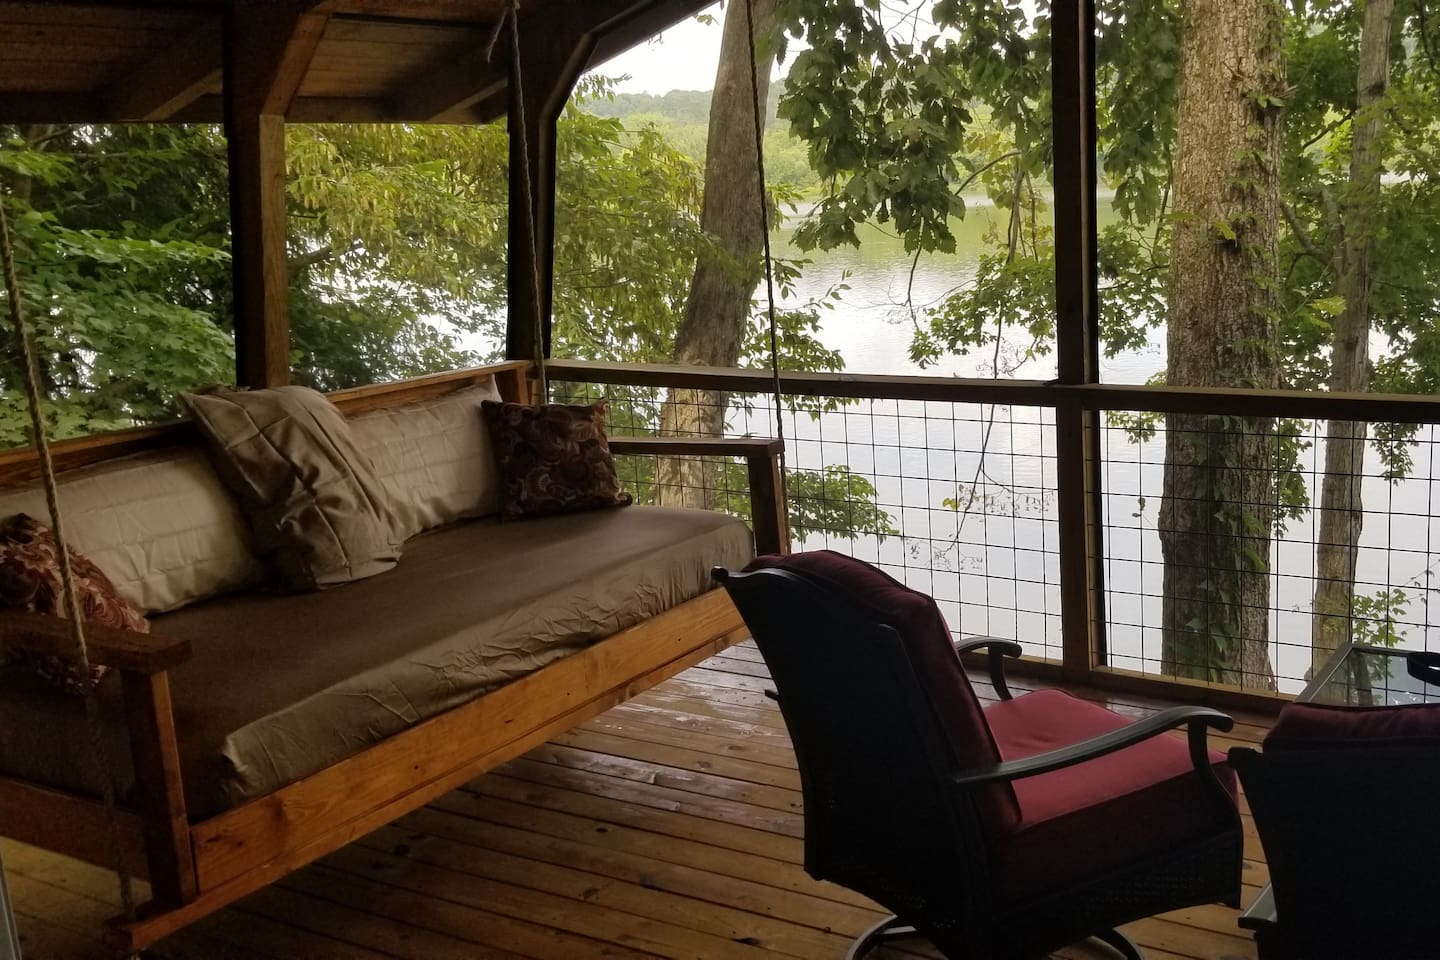 This swing bed is perfect for afternoon naps on the screened in porch, overlooking the water.